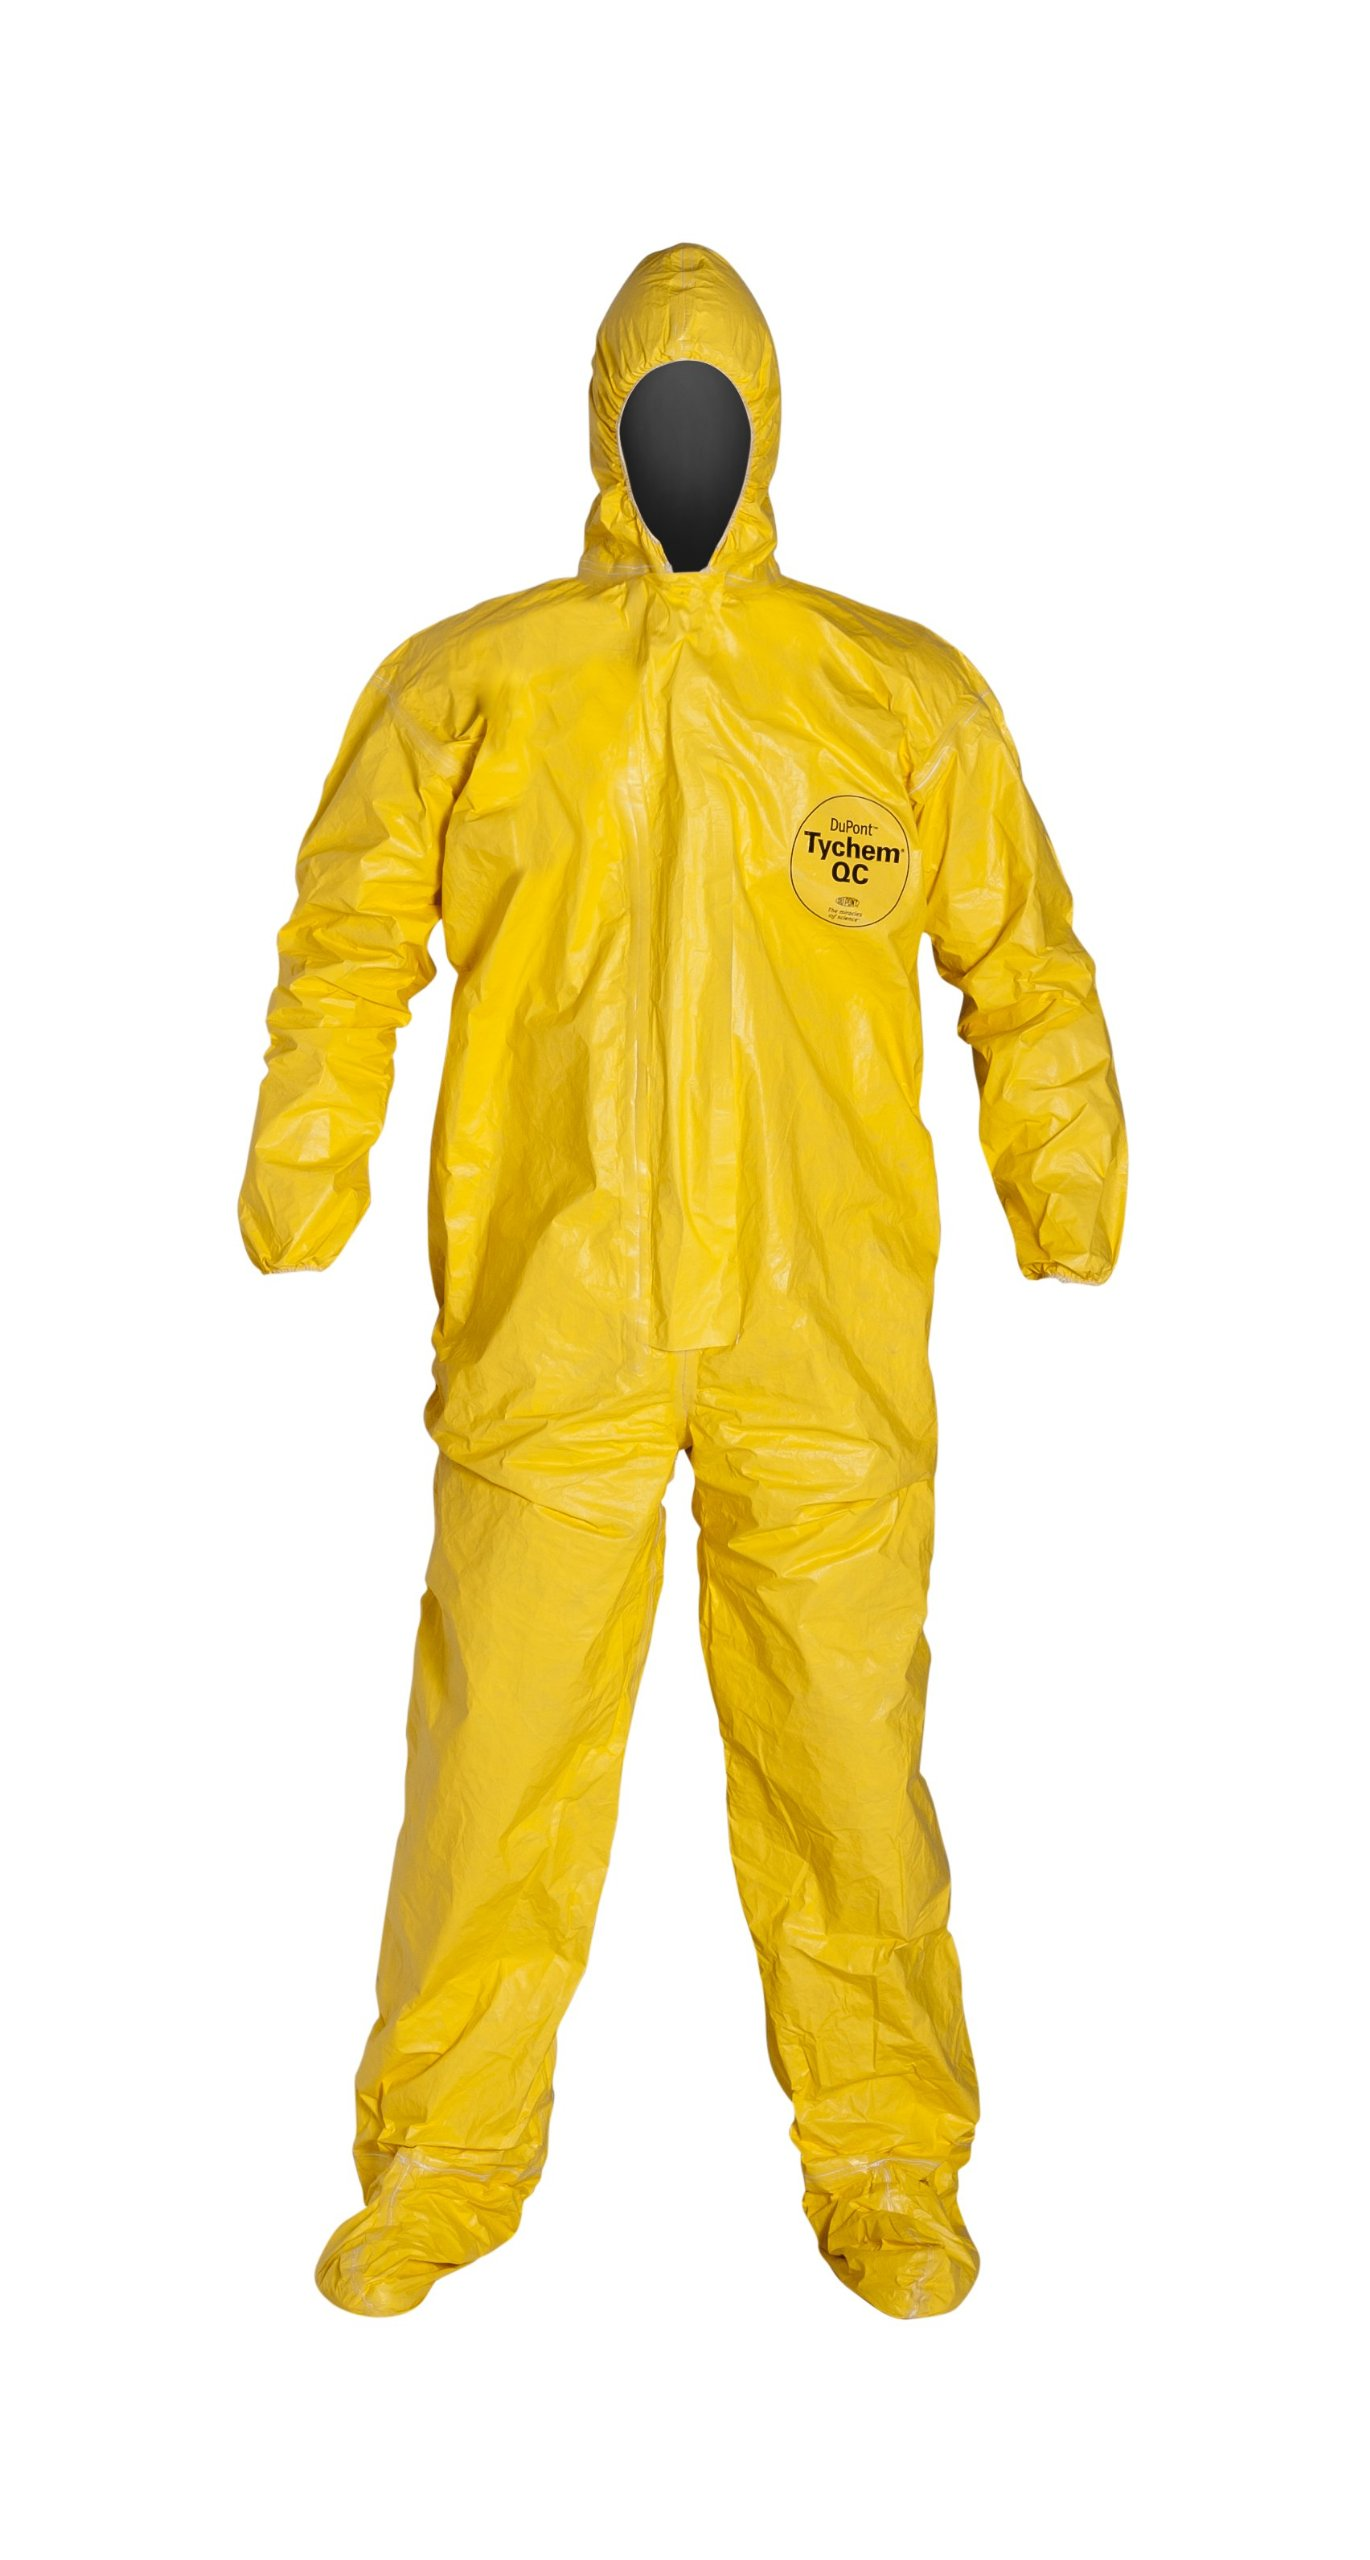 DuPont Tychem 2000 QC122T Disposable Chemical Resistant Coverall with Hood and Elastic Cuff, Yellow, X-Large (Pack of 4)